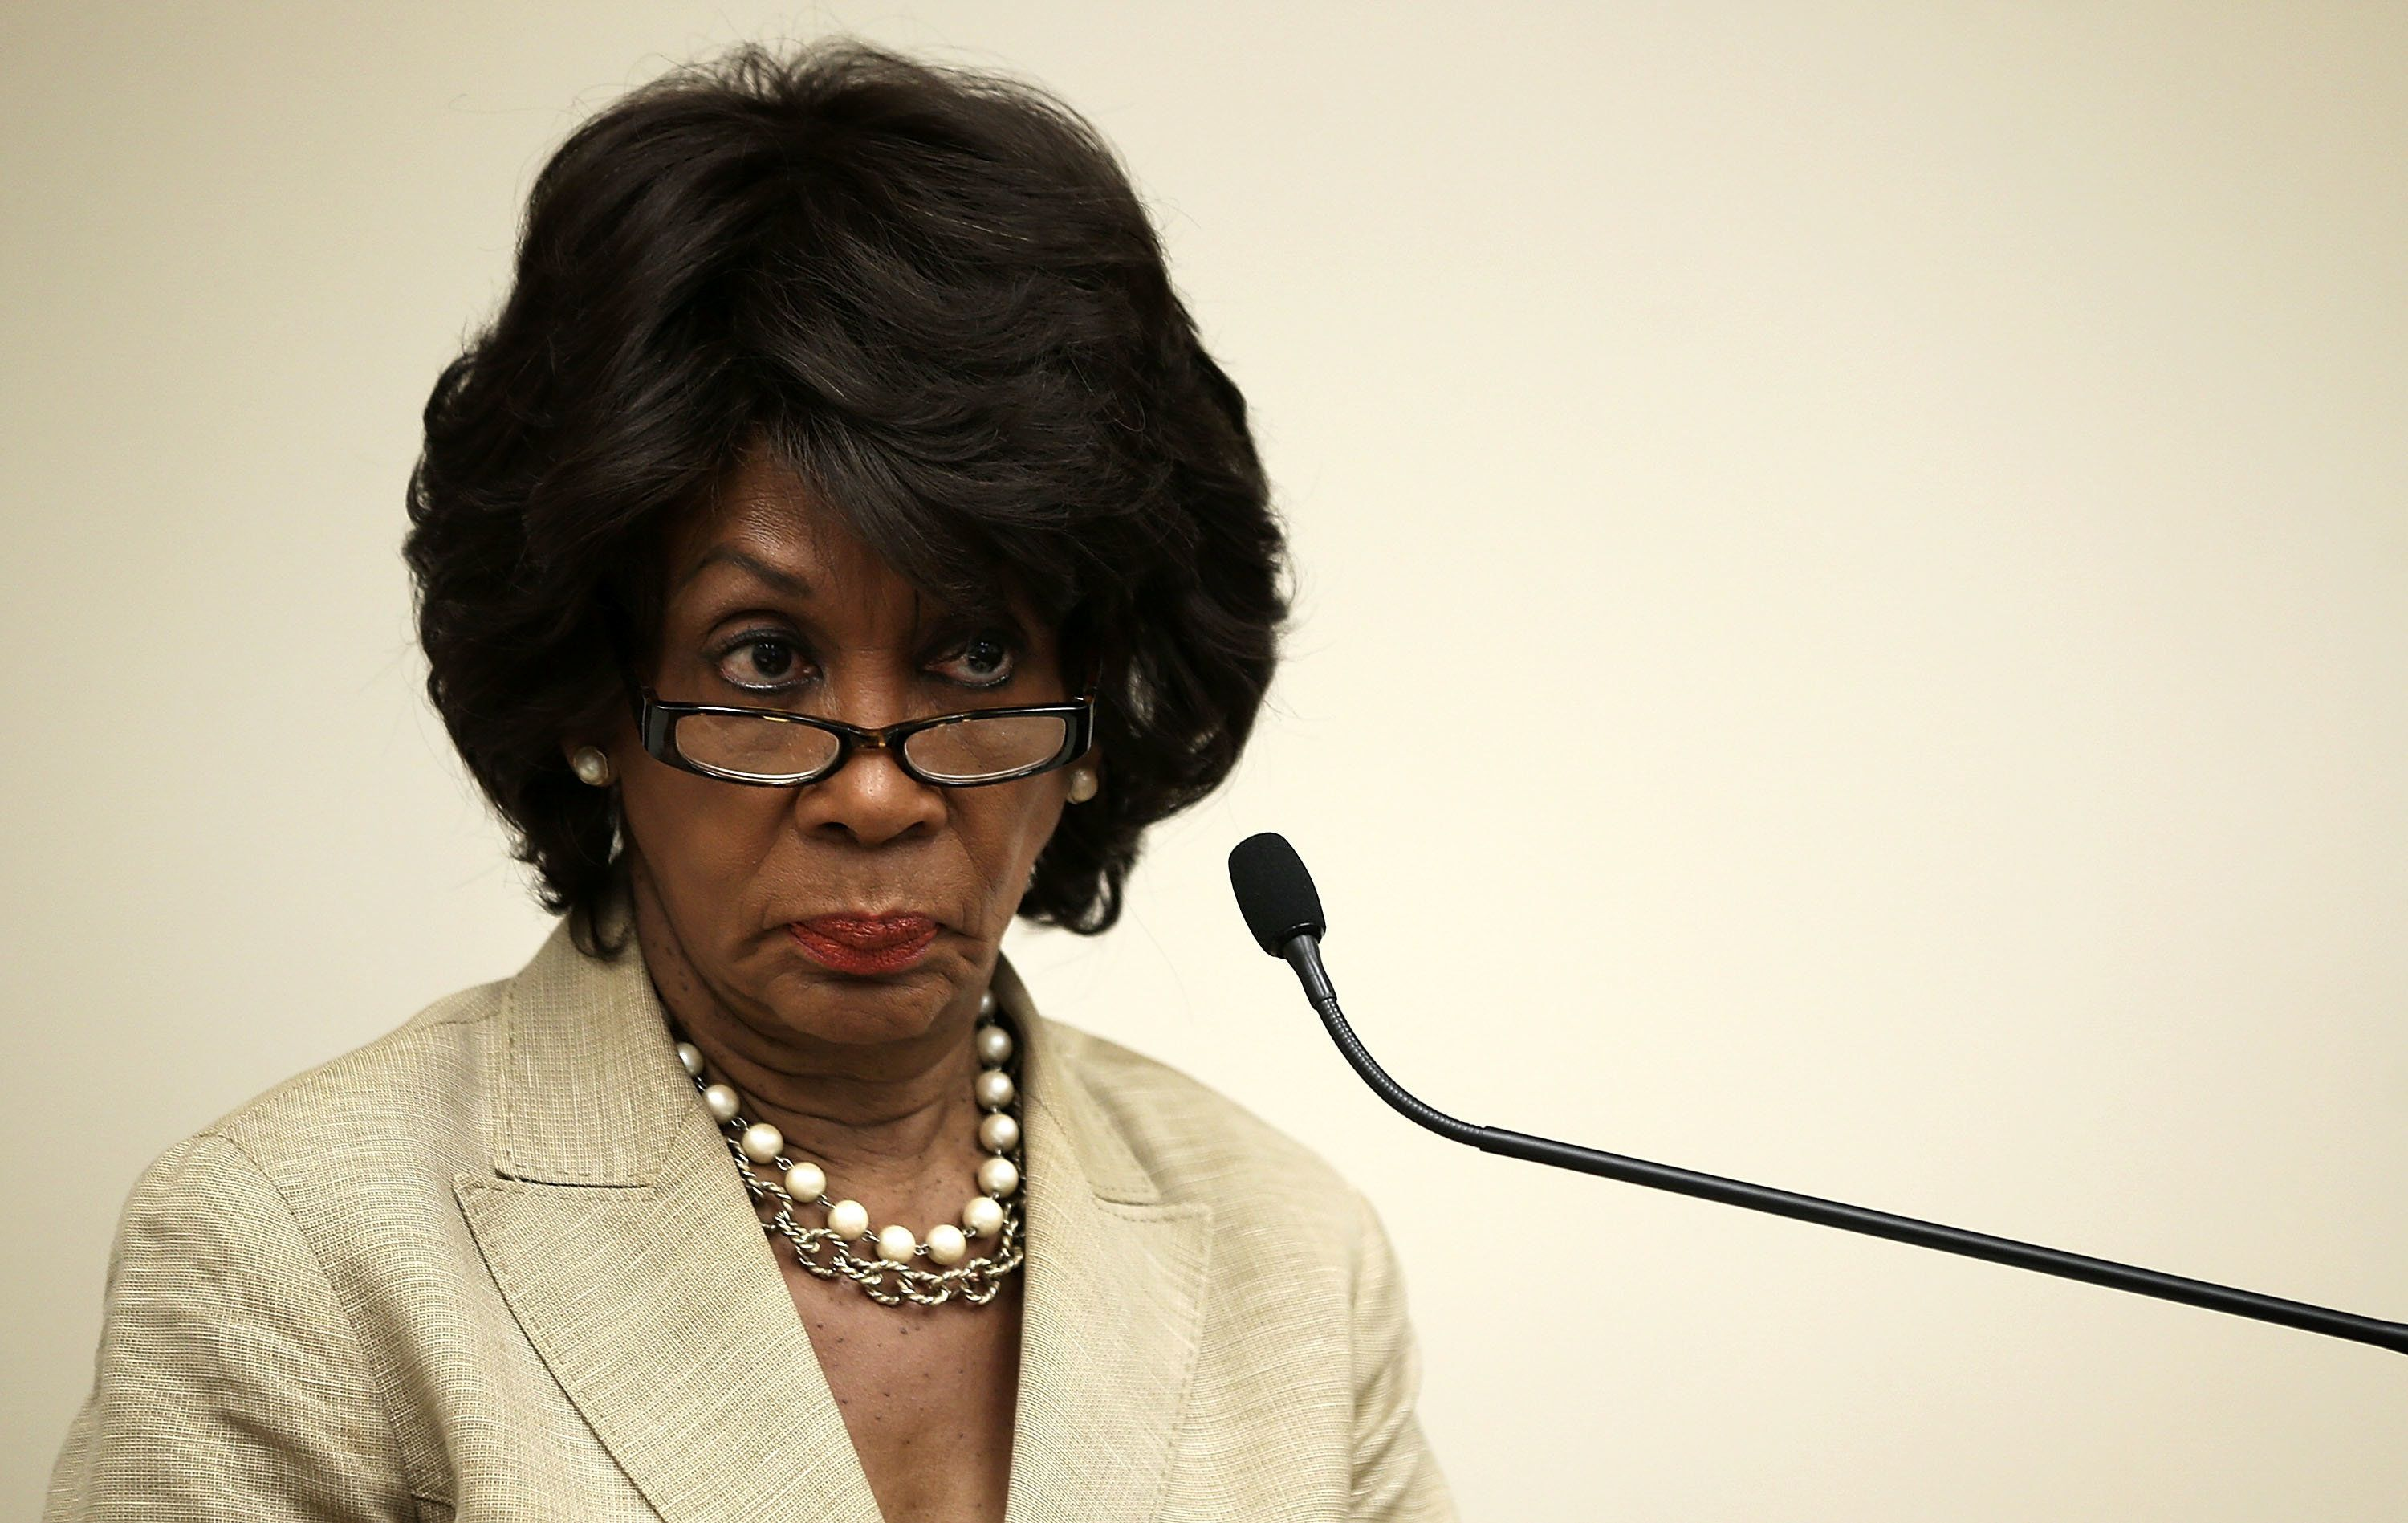 "<span class='image-component__caption' itemprop=""caption"">Rep. Maxine Waters (D-Calif.), pictured, along with Sens. Sherrod Brown (D-Ohio) and Elizabeth Warren (D-Mass.), have criticized HUD's proposal</span>"